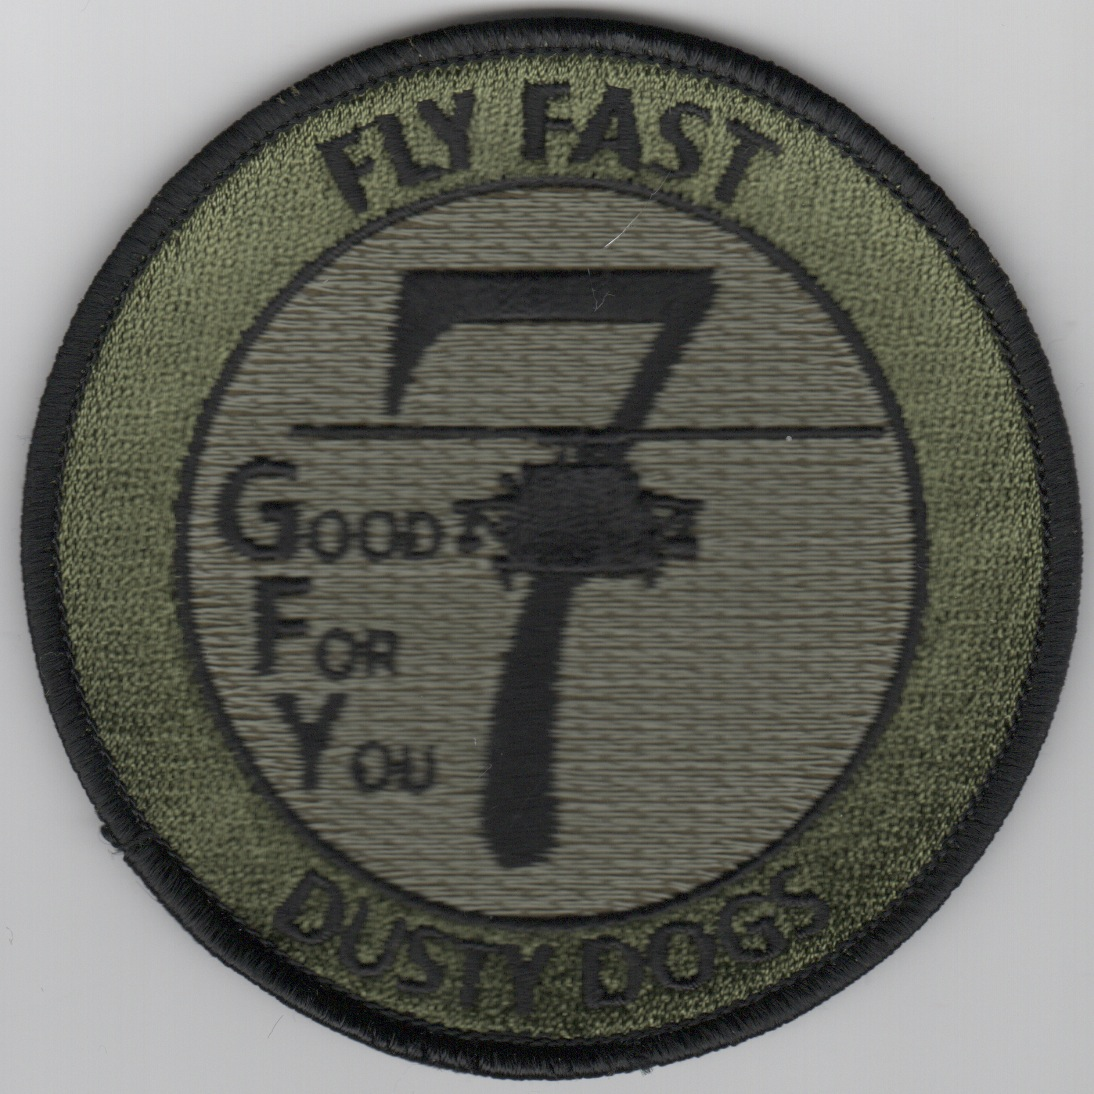 HSC-7 'Fly Fast' (Subd)